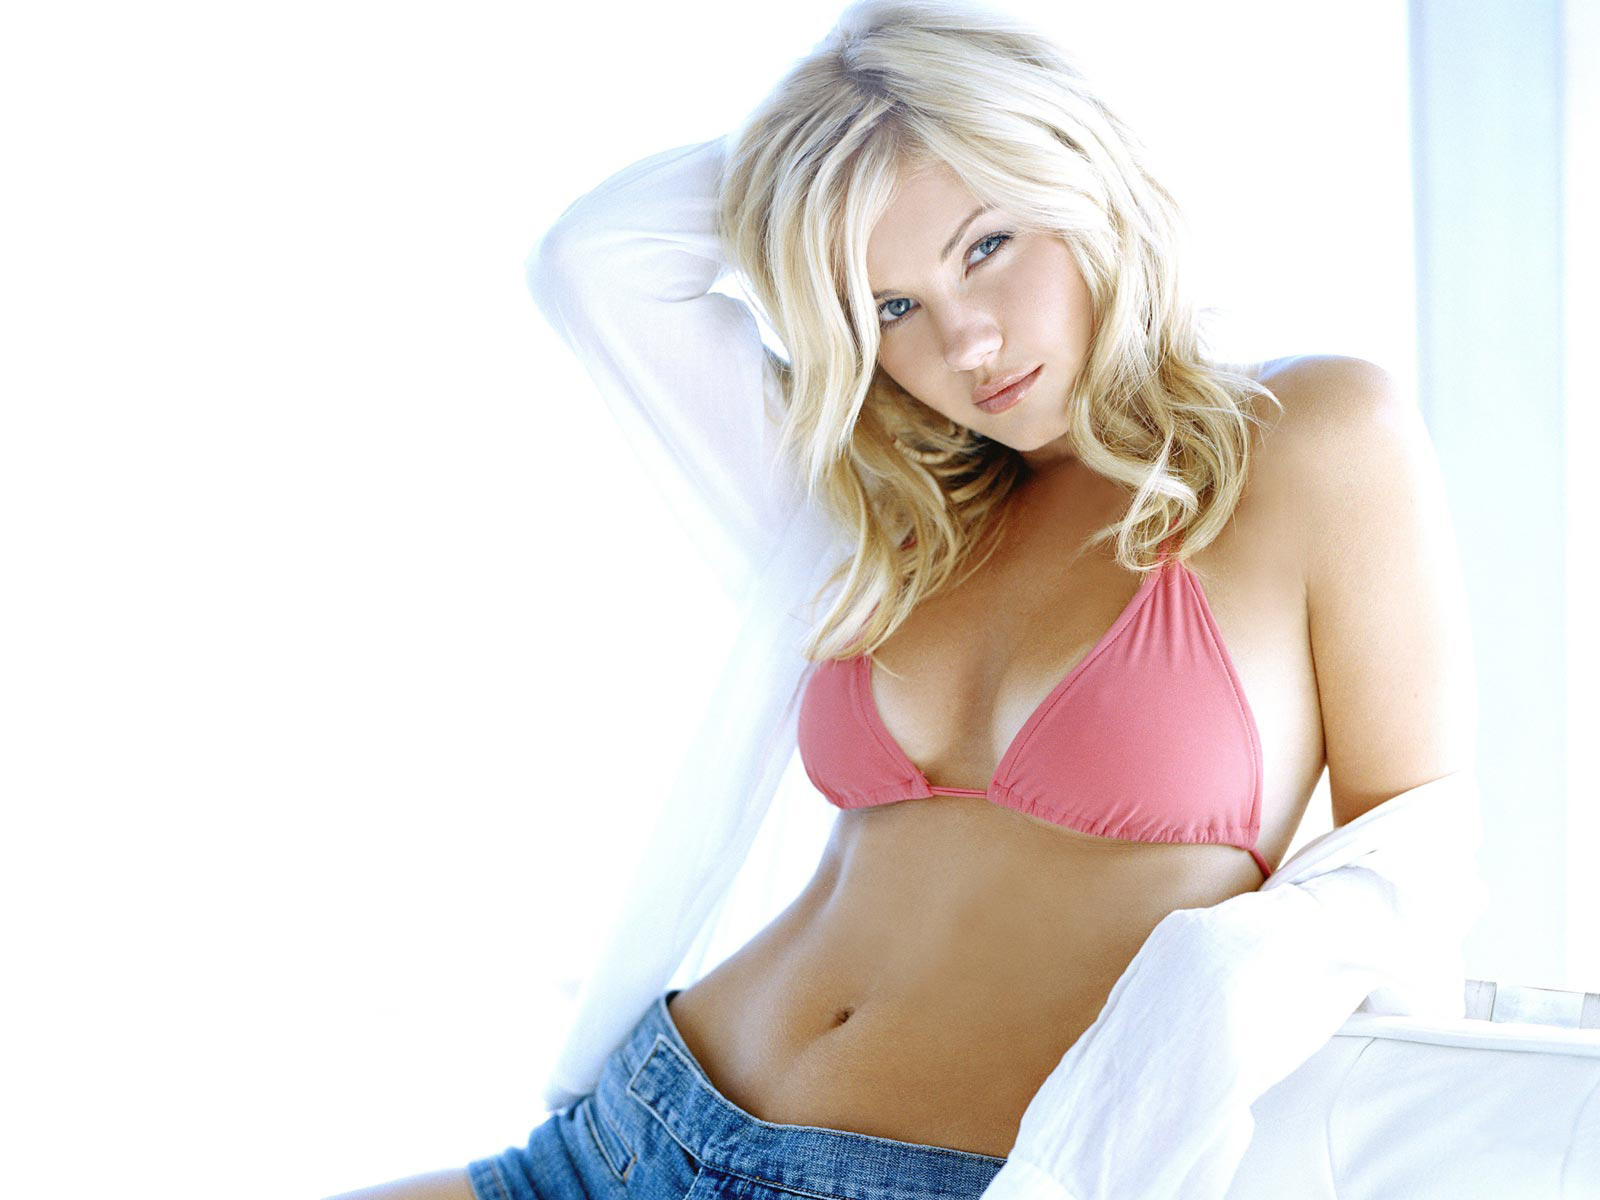 http://4.bp.blogspot.com/-5kFxC9DM6_M/UIFa7AB2uHI/AAAAAAAAYzU/aHgTH-KGibs/s1600/Elisha+Cuthbert+Hot+HD+Wallpaper+2012+02.jpg